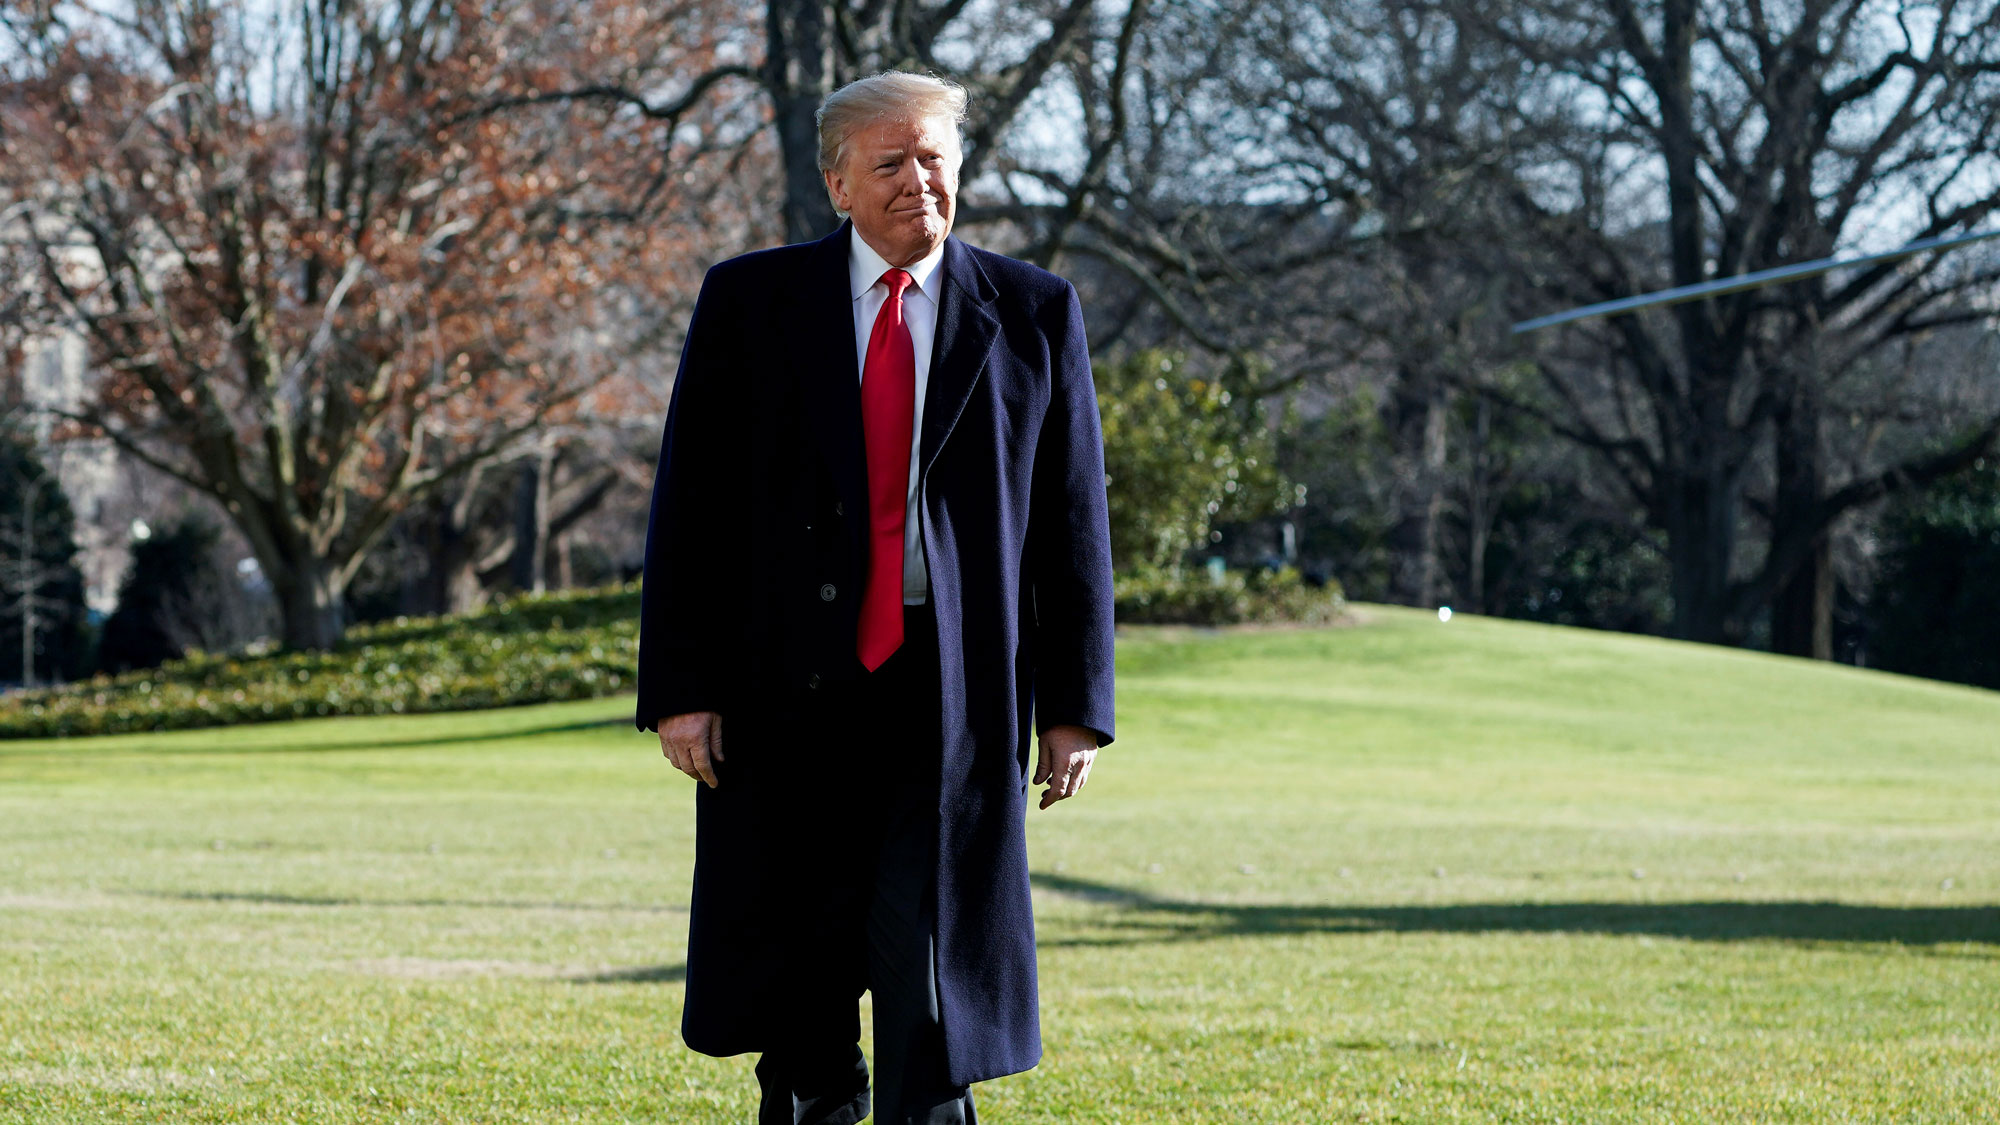 US President Donald Trump is shown walking on a grassy lawn with a dark overcoat on.